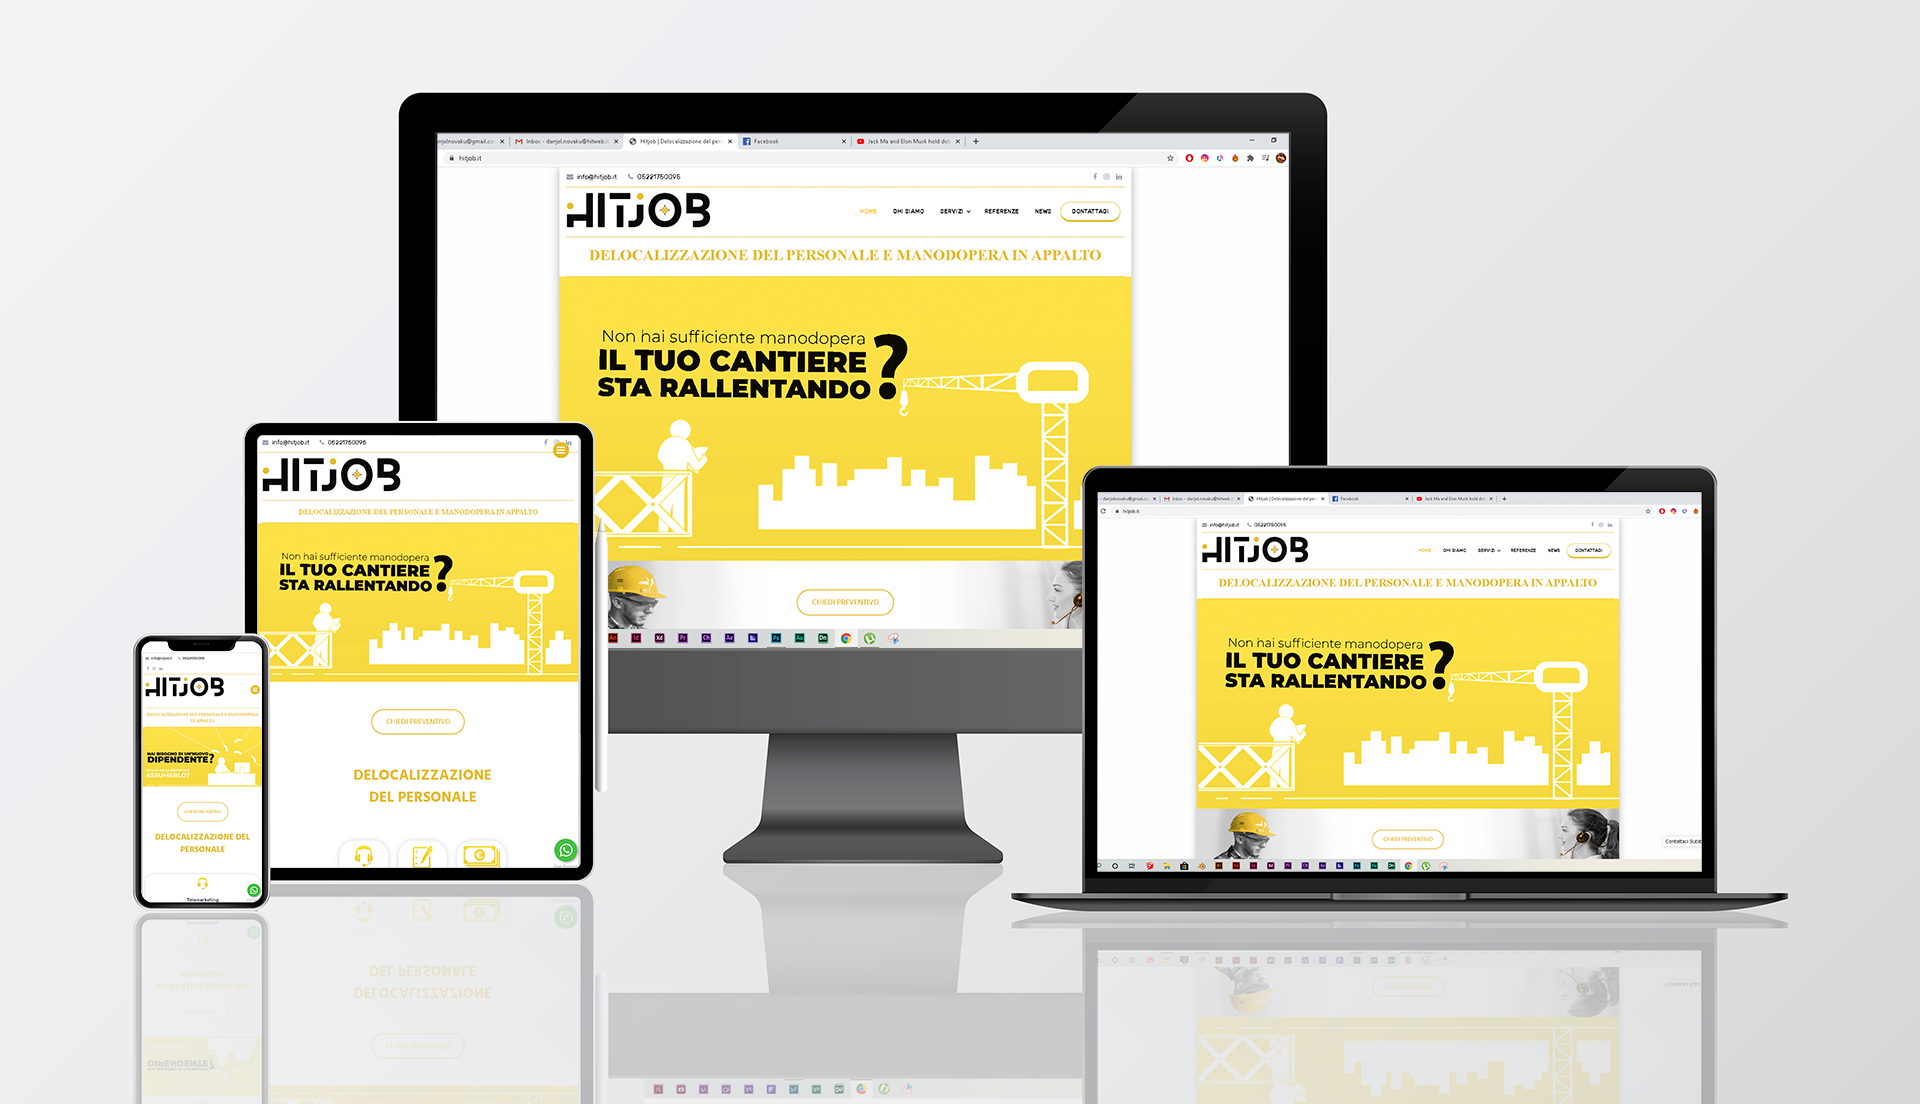 hitjob.it | This is a project i have done while working on Hitweb Company | © Hitweb.it